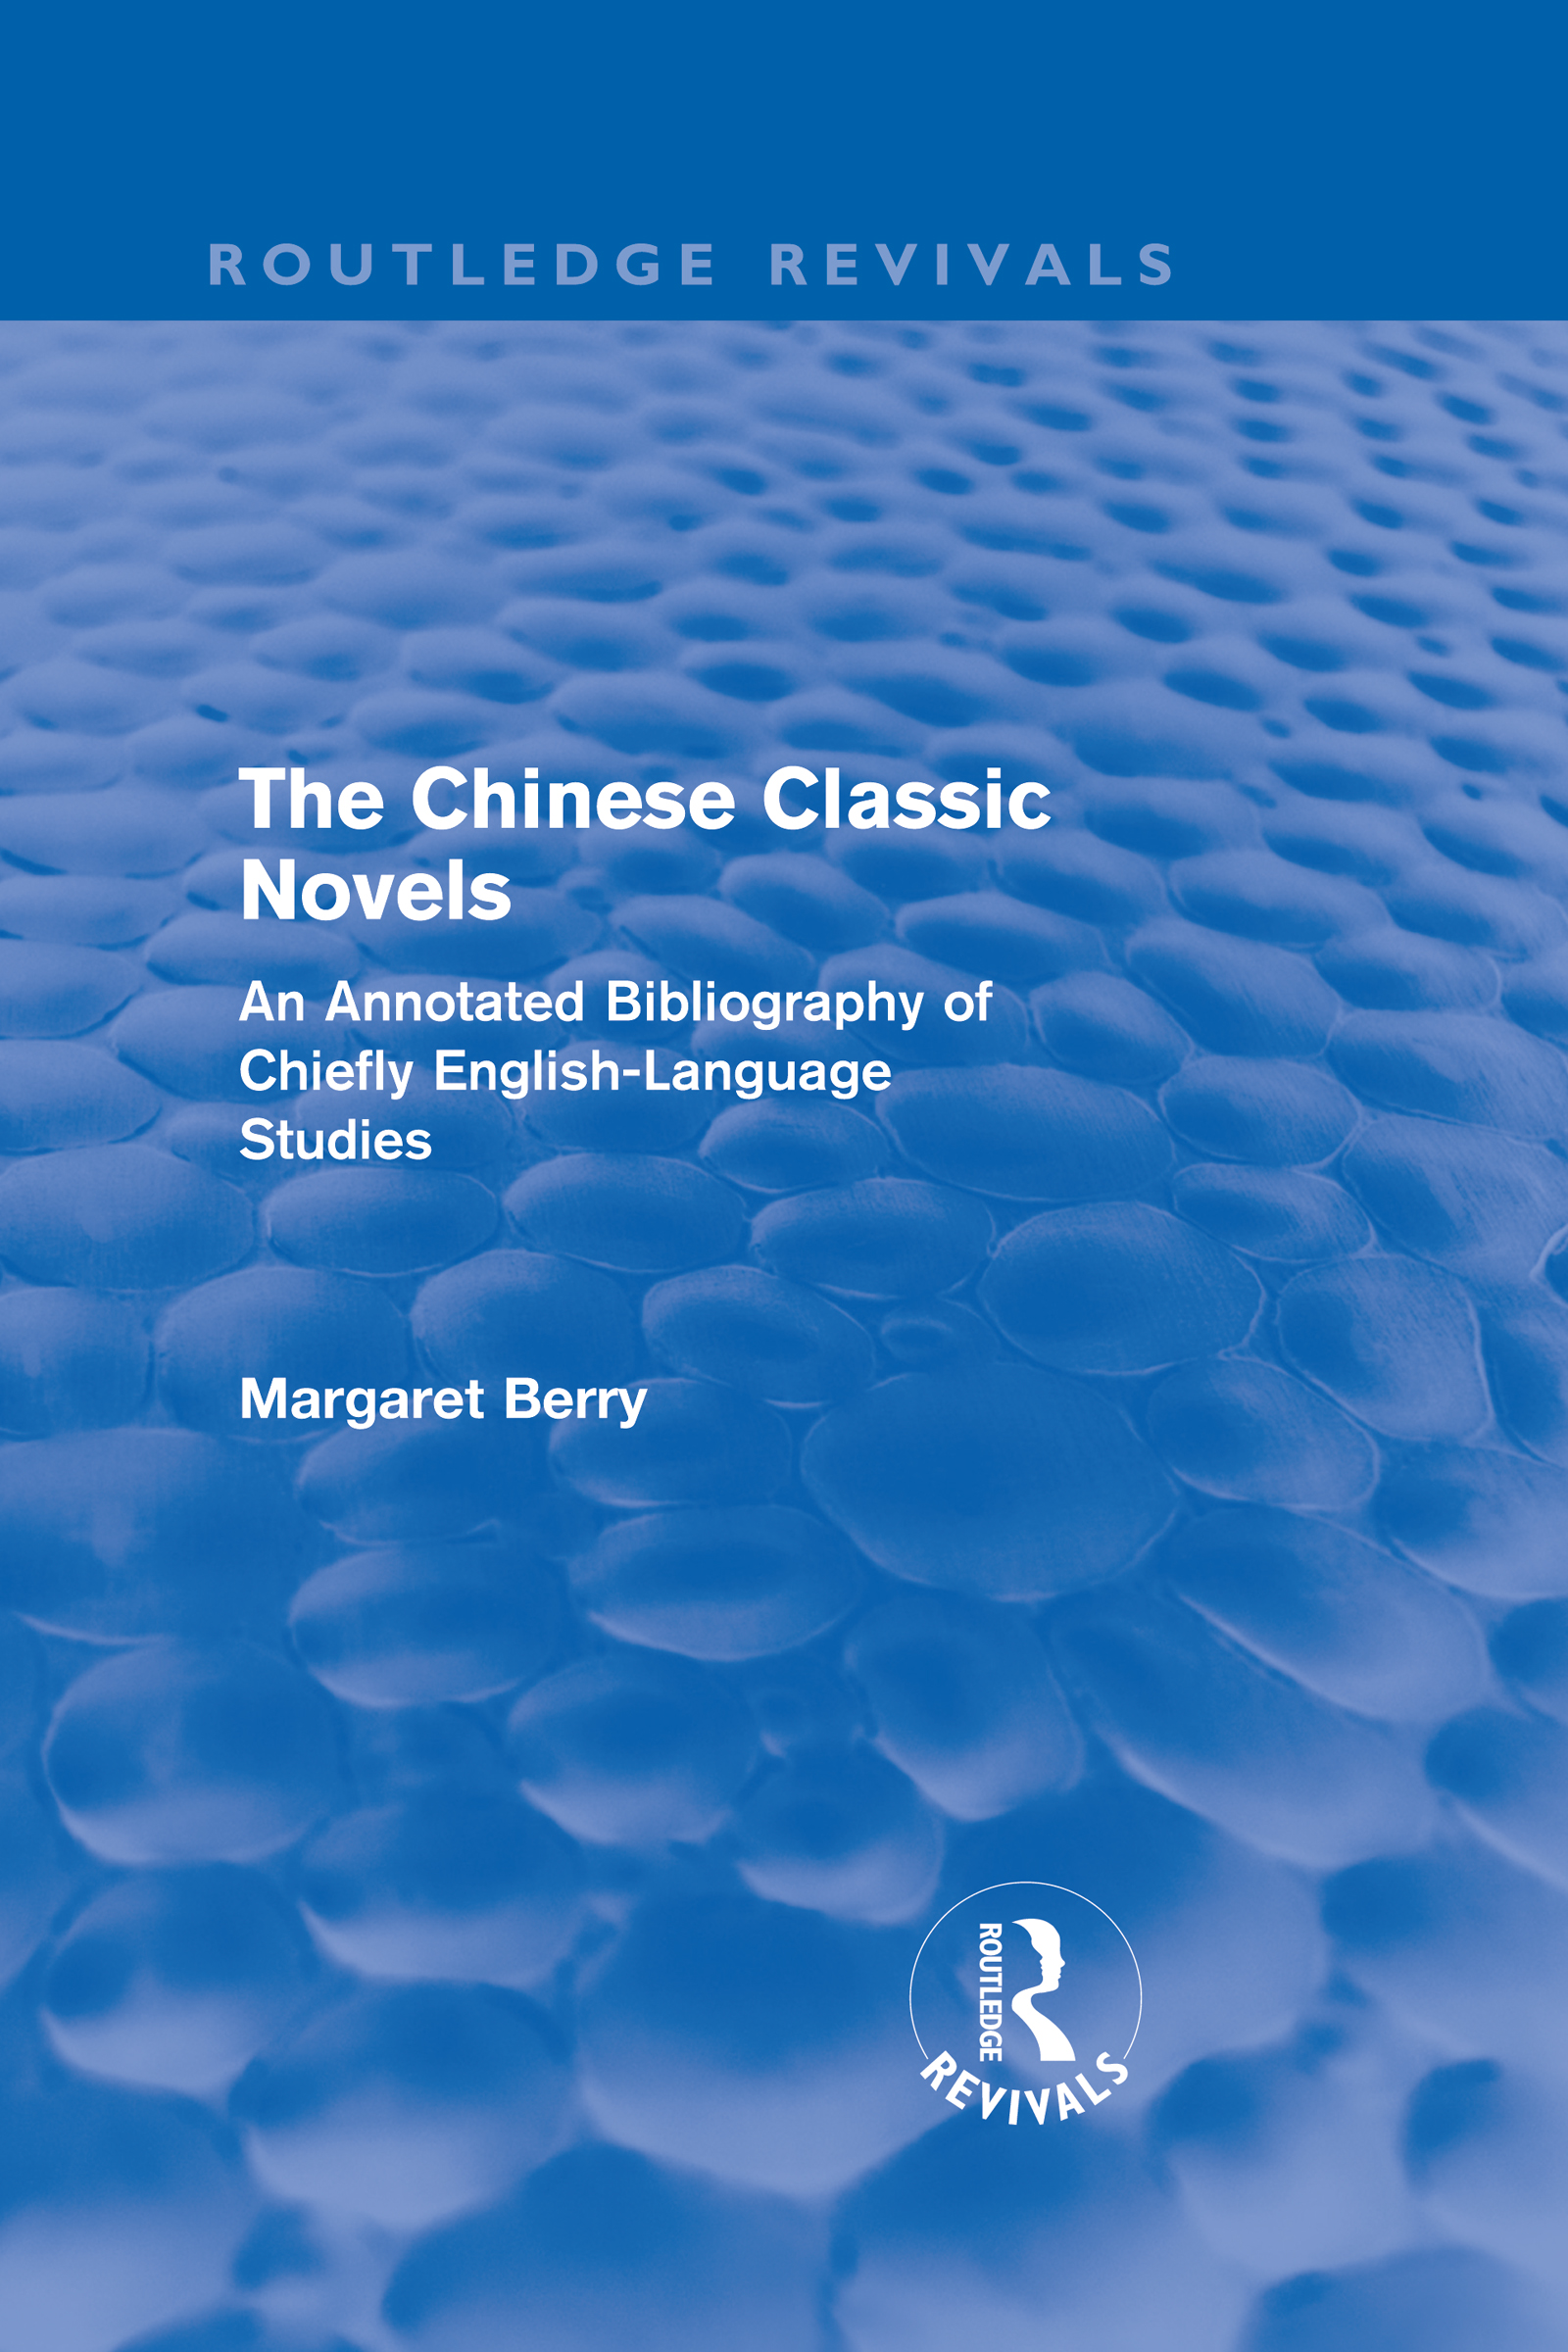 The Chinese Classic Novels (Routledge Revivals): An Annotated Bibliography of Chiefly English-Language Studies (Hardback) book cover